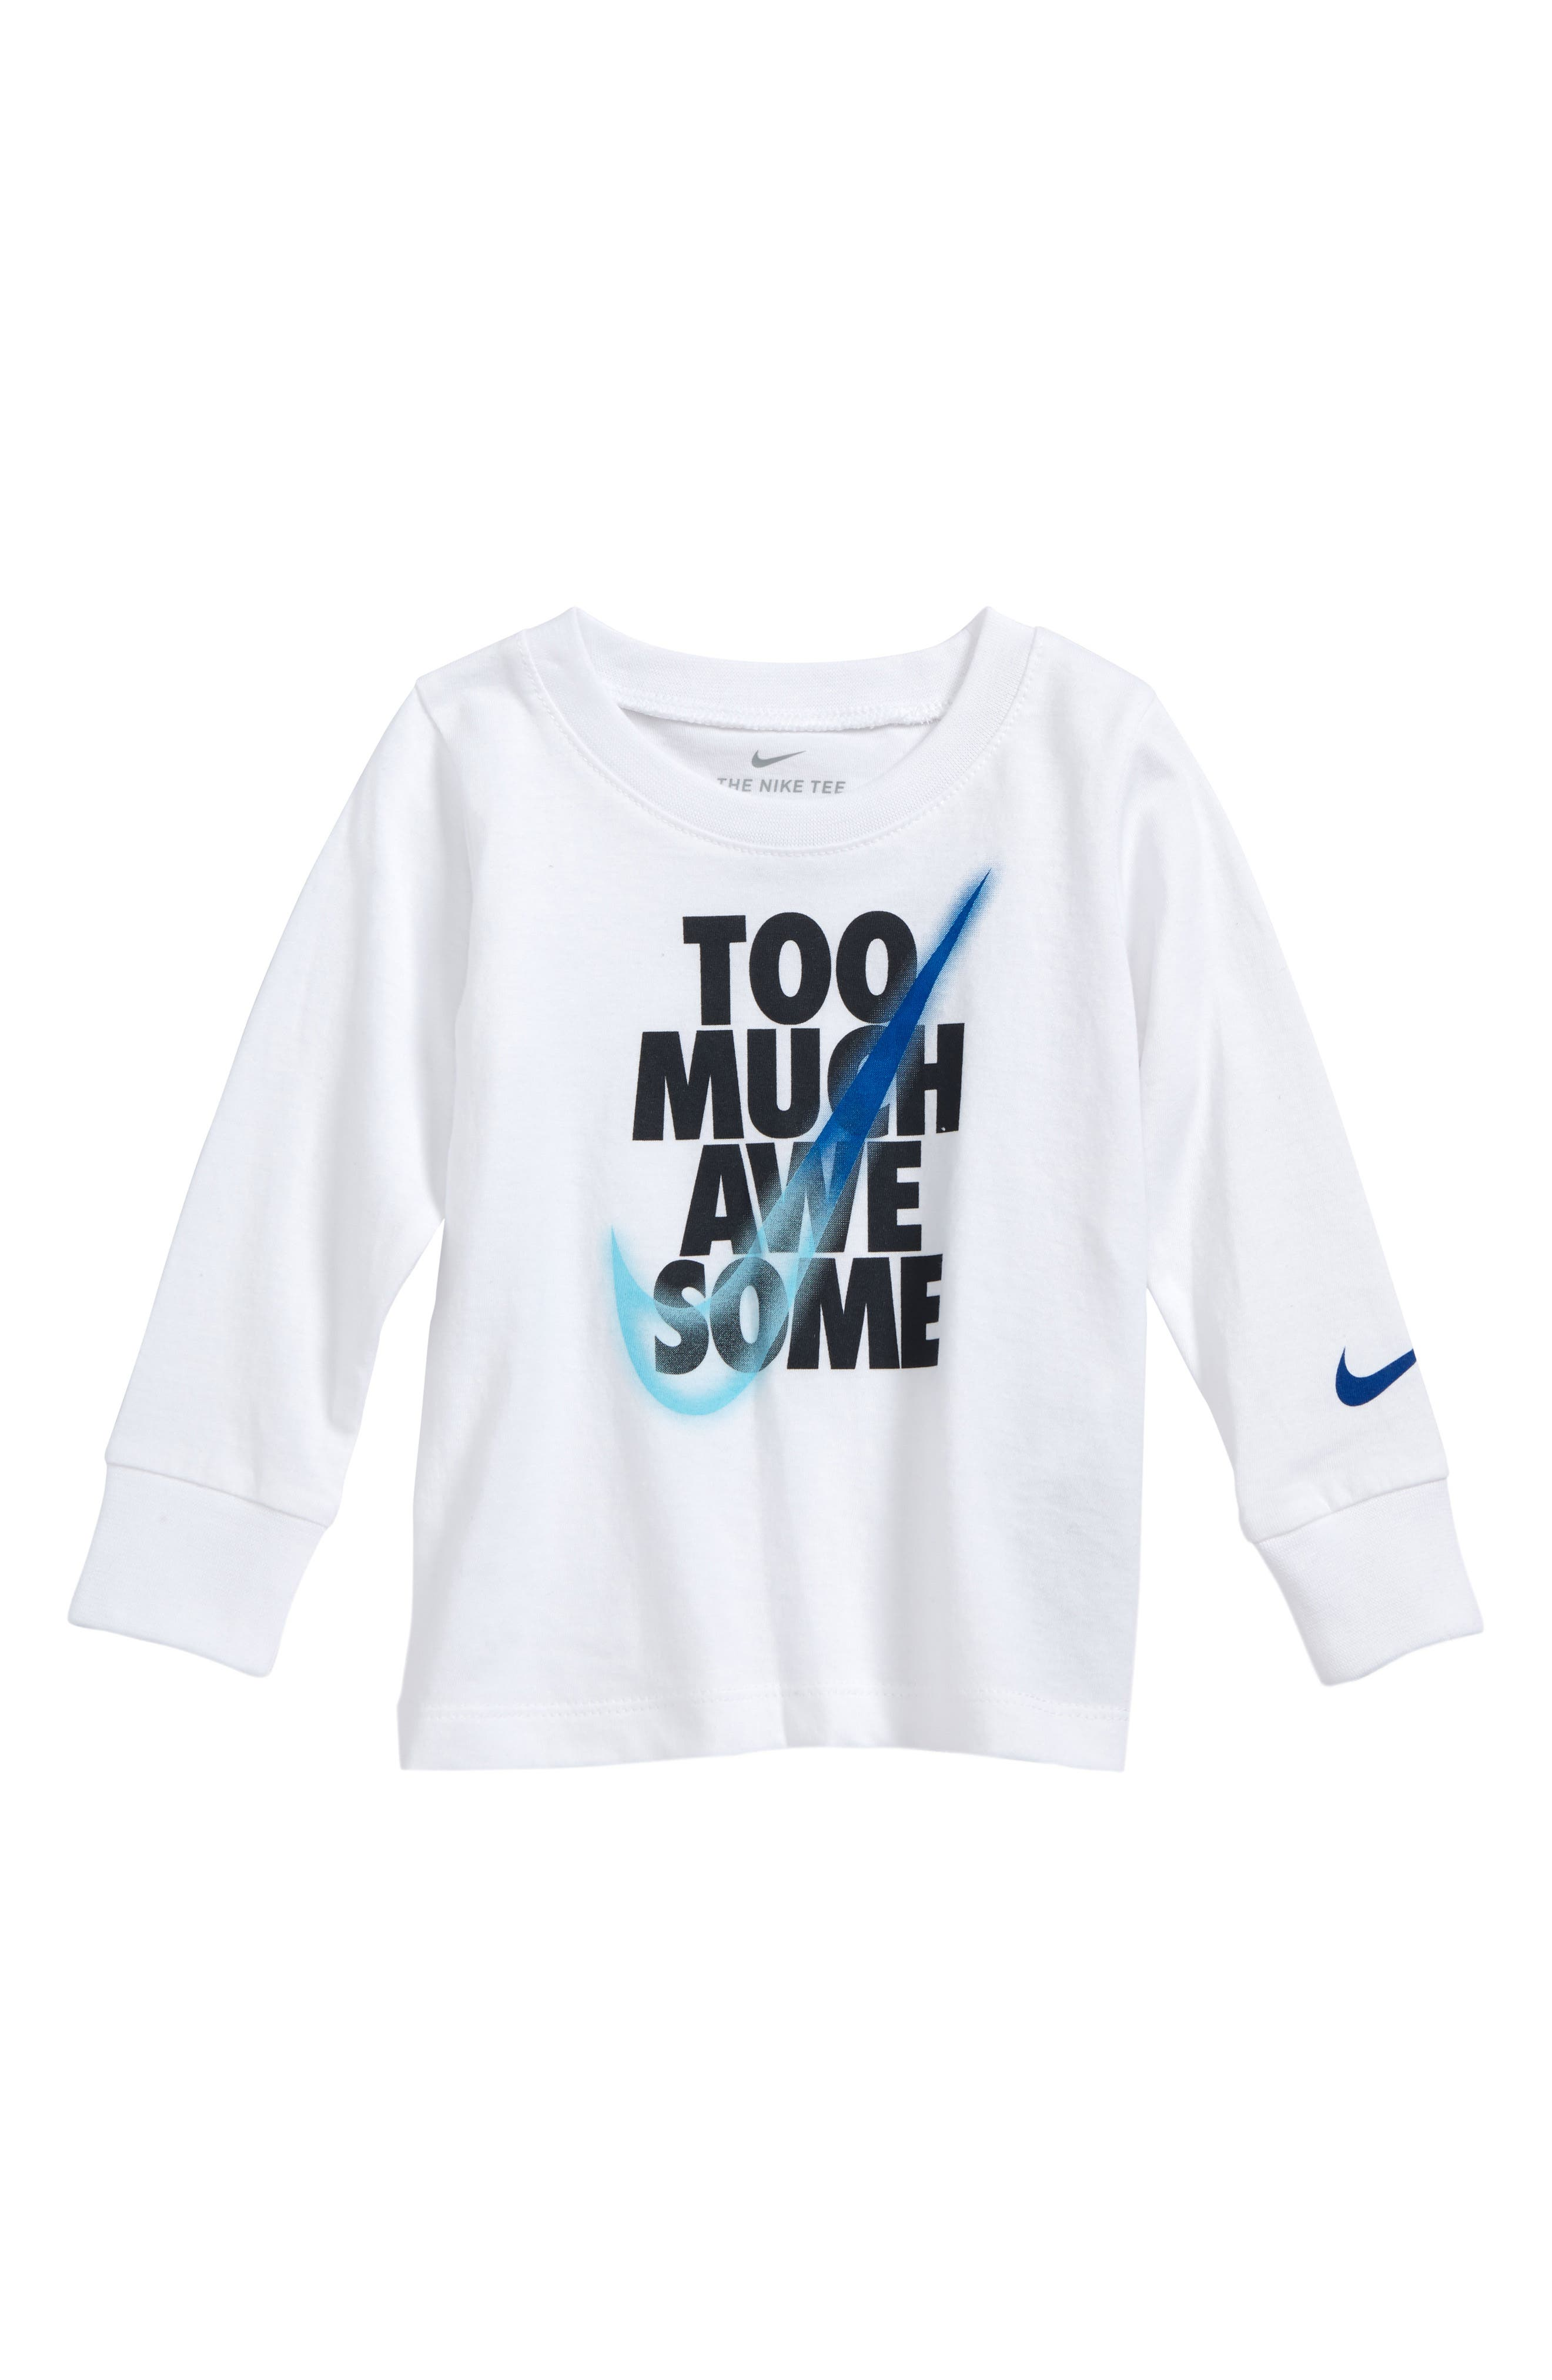 Nike Too Much Awesome T-Shirt (Baby Boys)